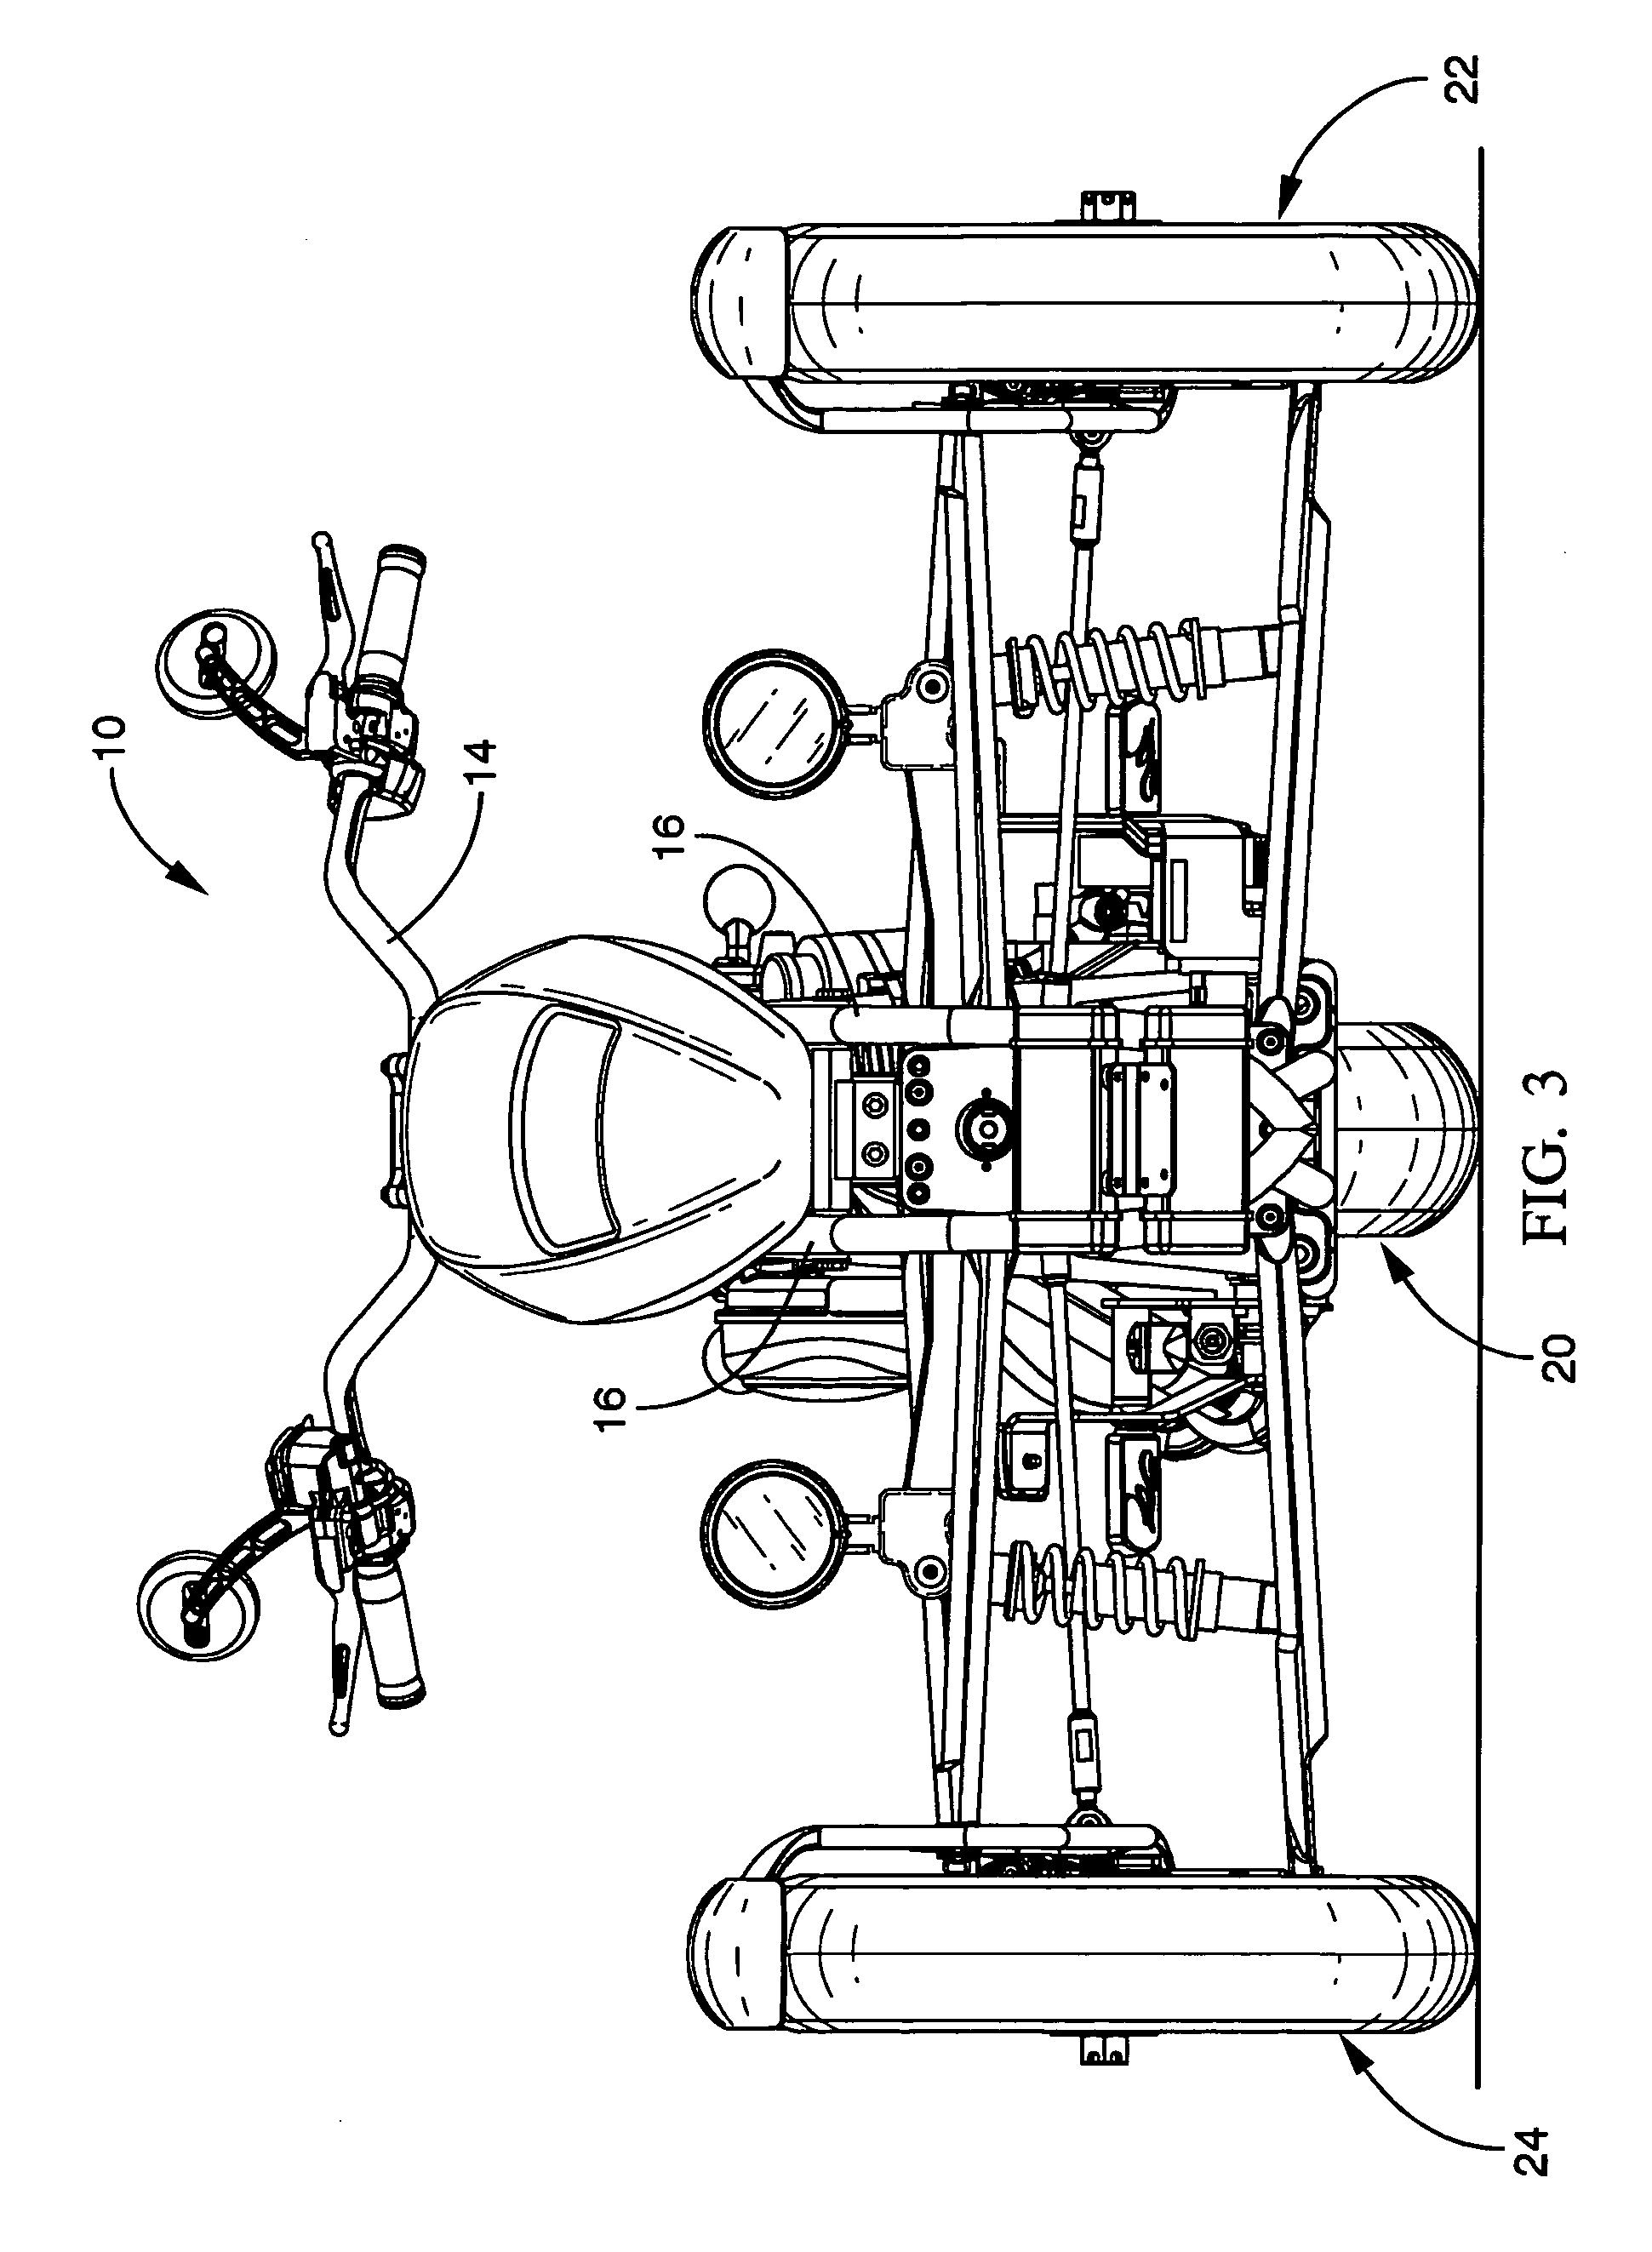 Qx4 Engine Diagram Cooling System